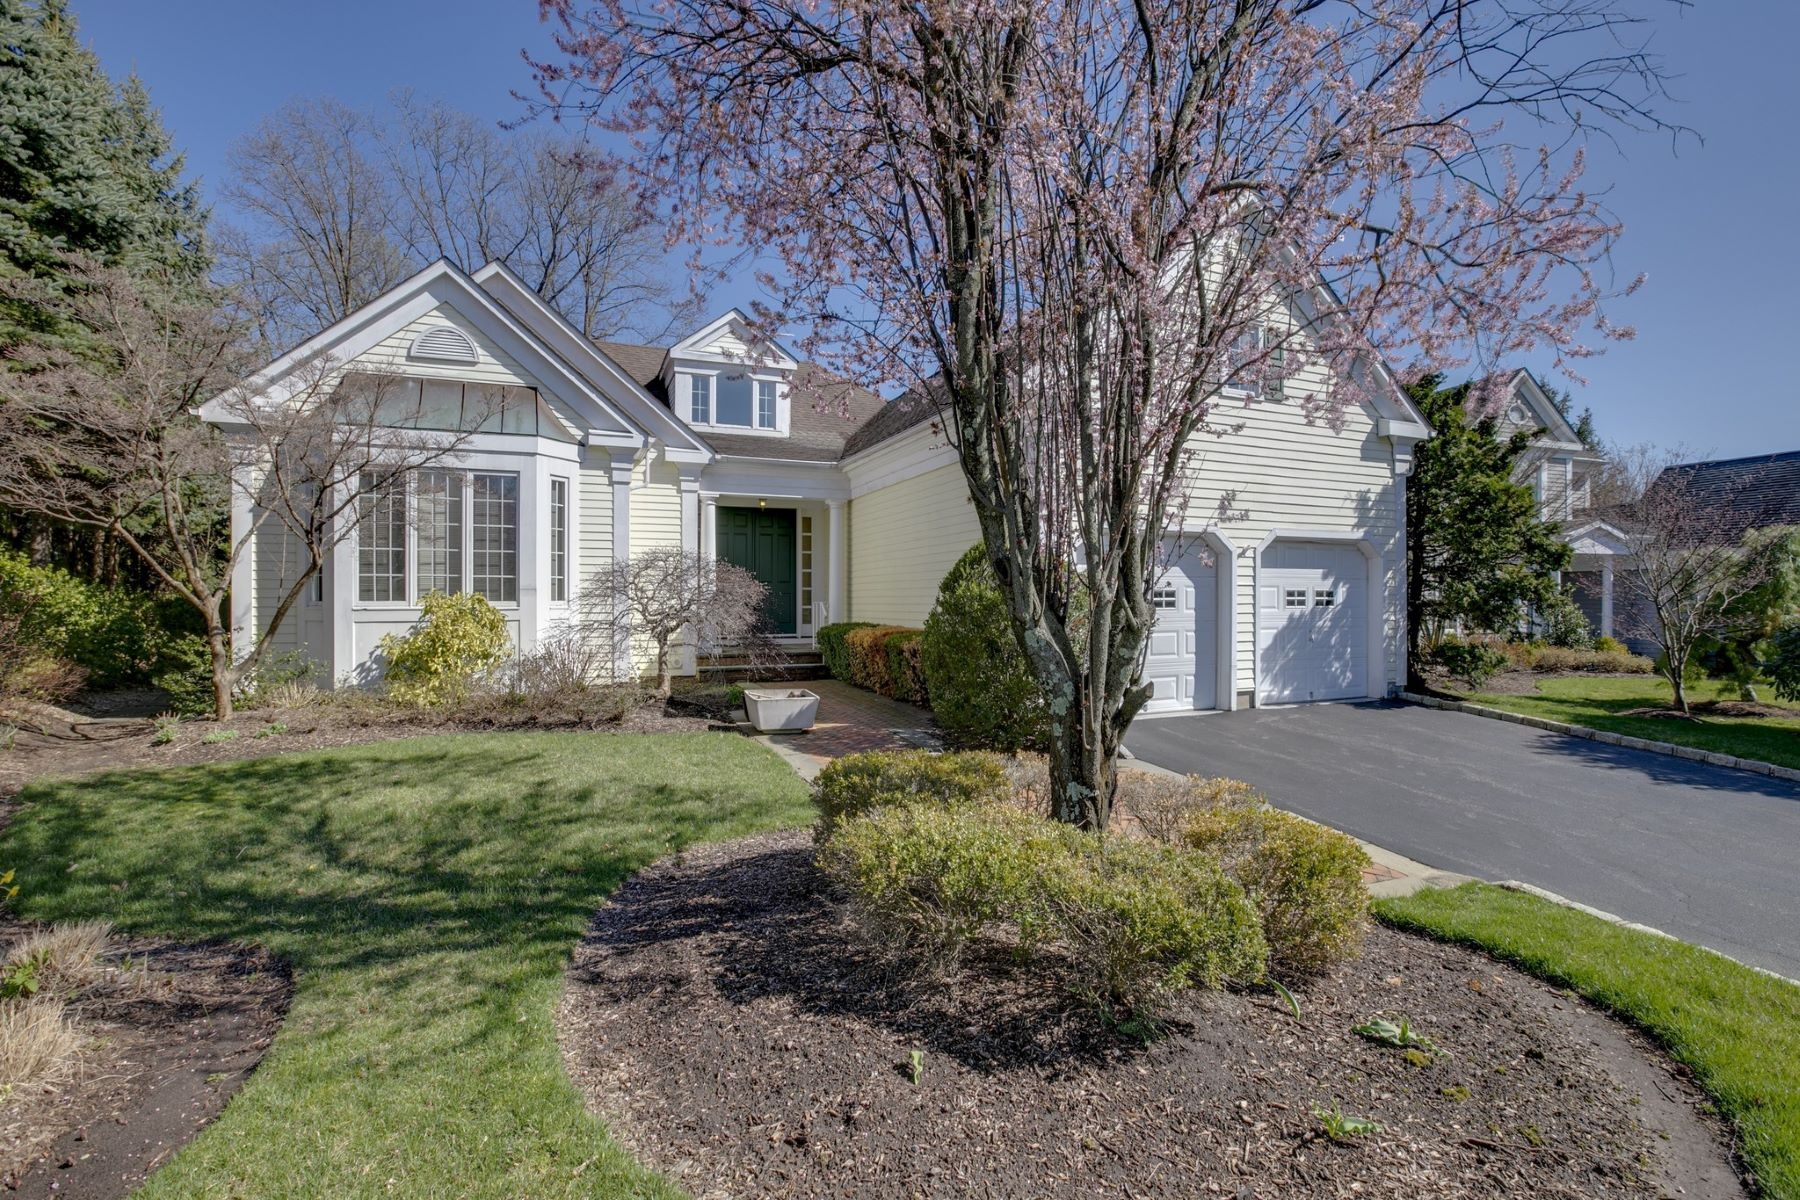 Single Family Homes for Active at Manhasset 41 Evergreen Cir Manhasset, New York 11030 United States